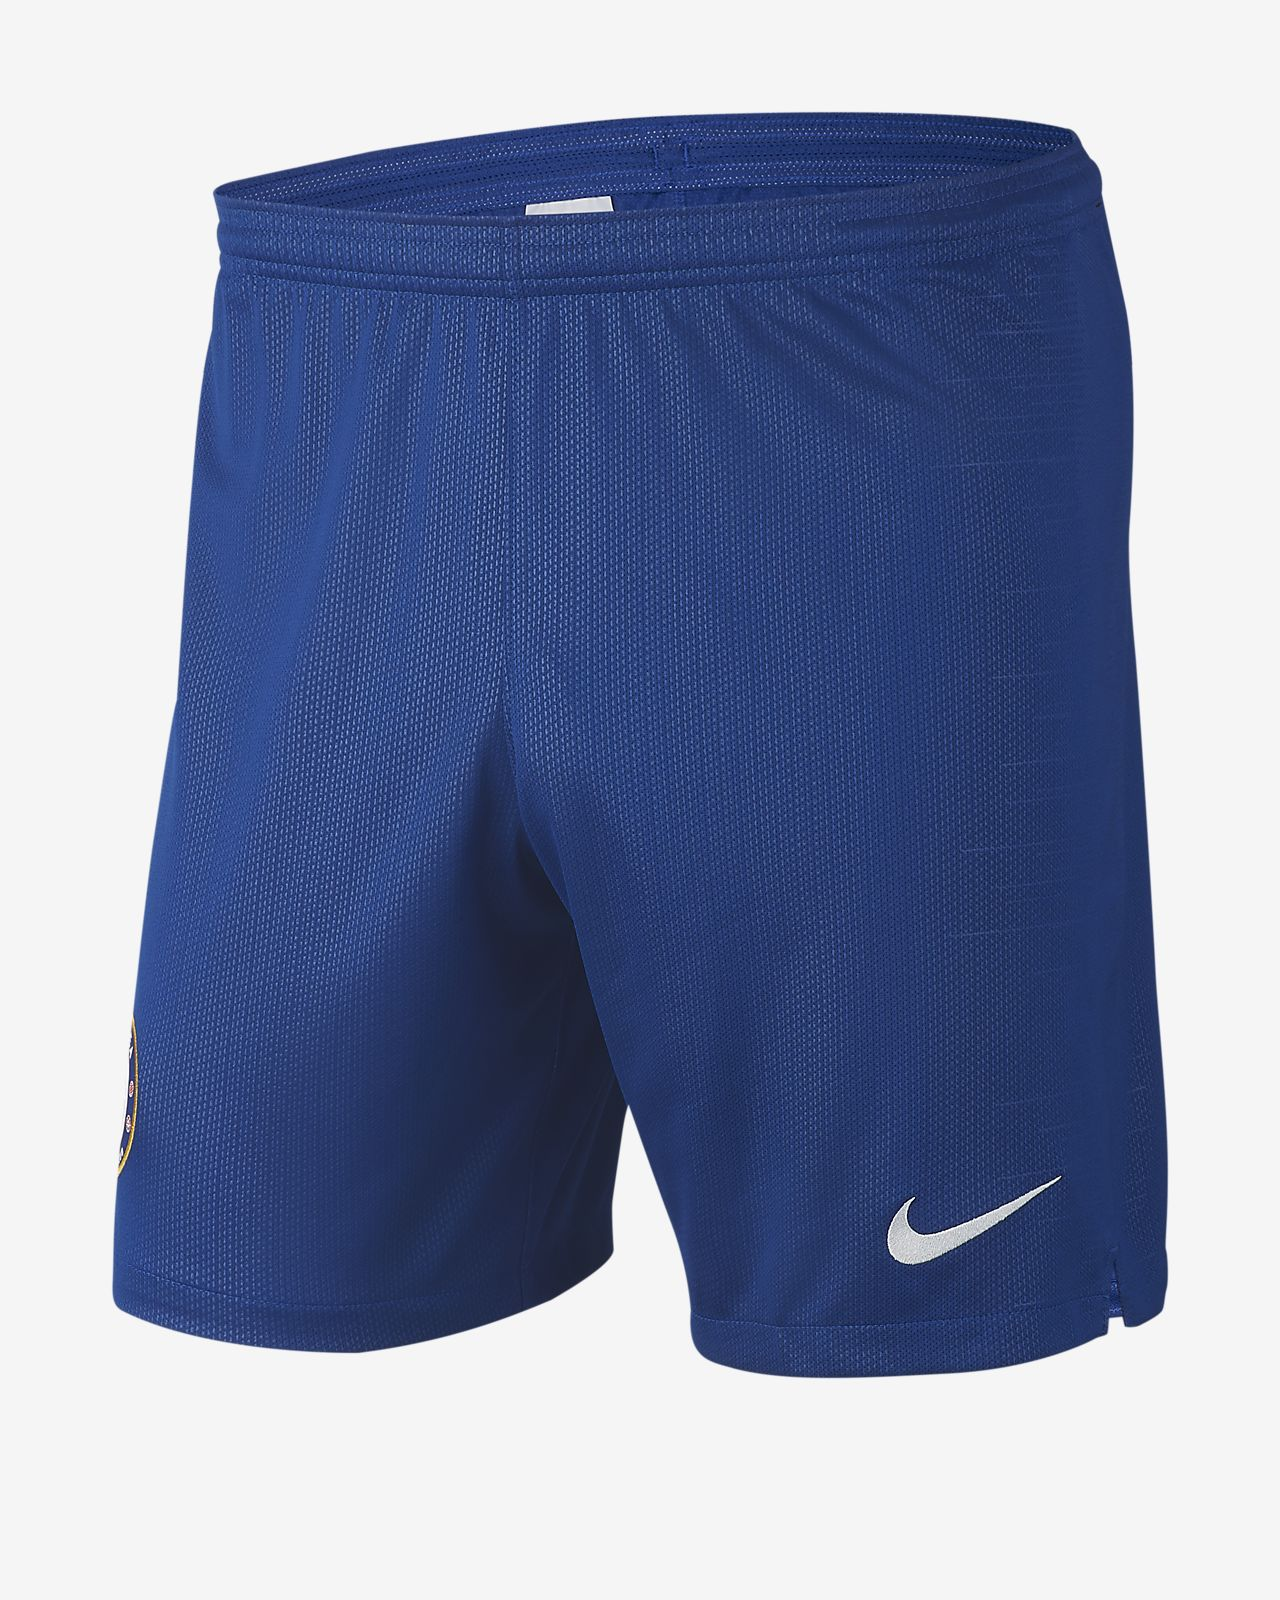 2018/19 Chelsea FC Stadium Home/Away Men's Football Shorts